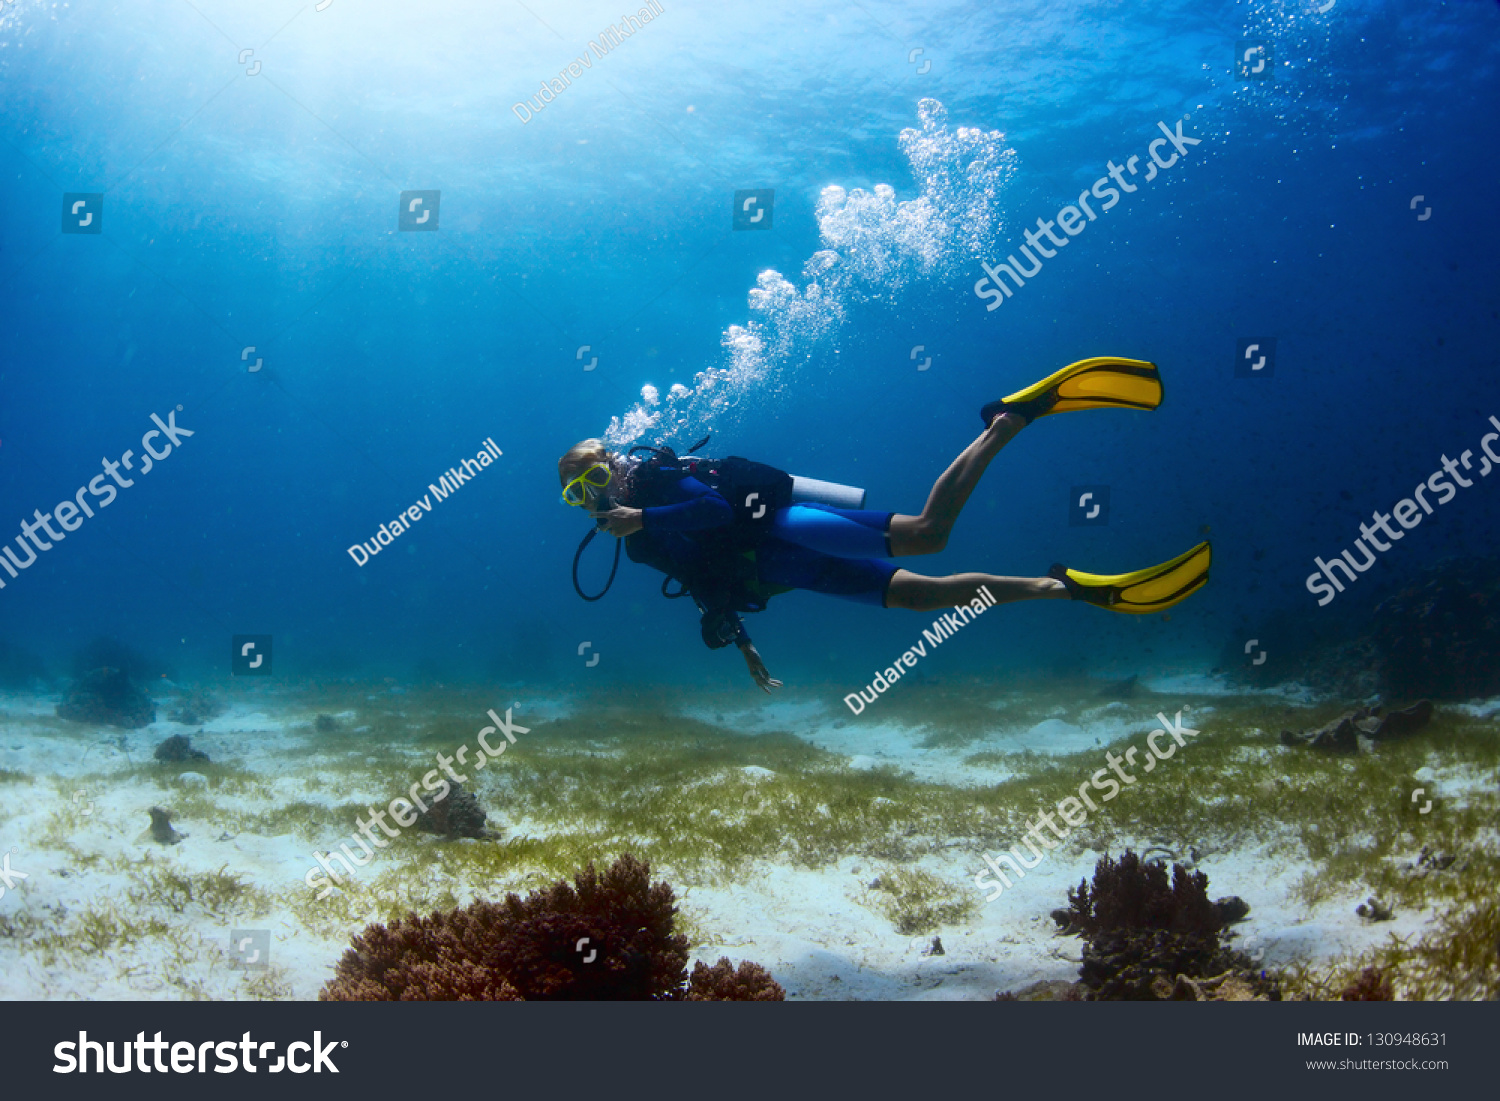 Scuba diver exploring tropical dive site and finning over bottom #130948631